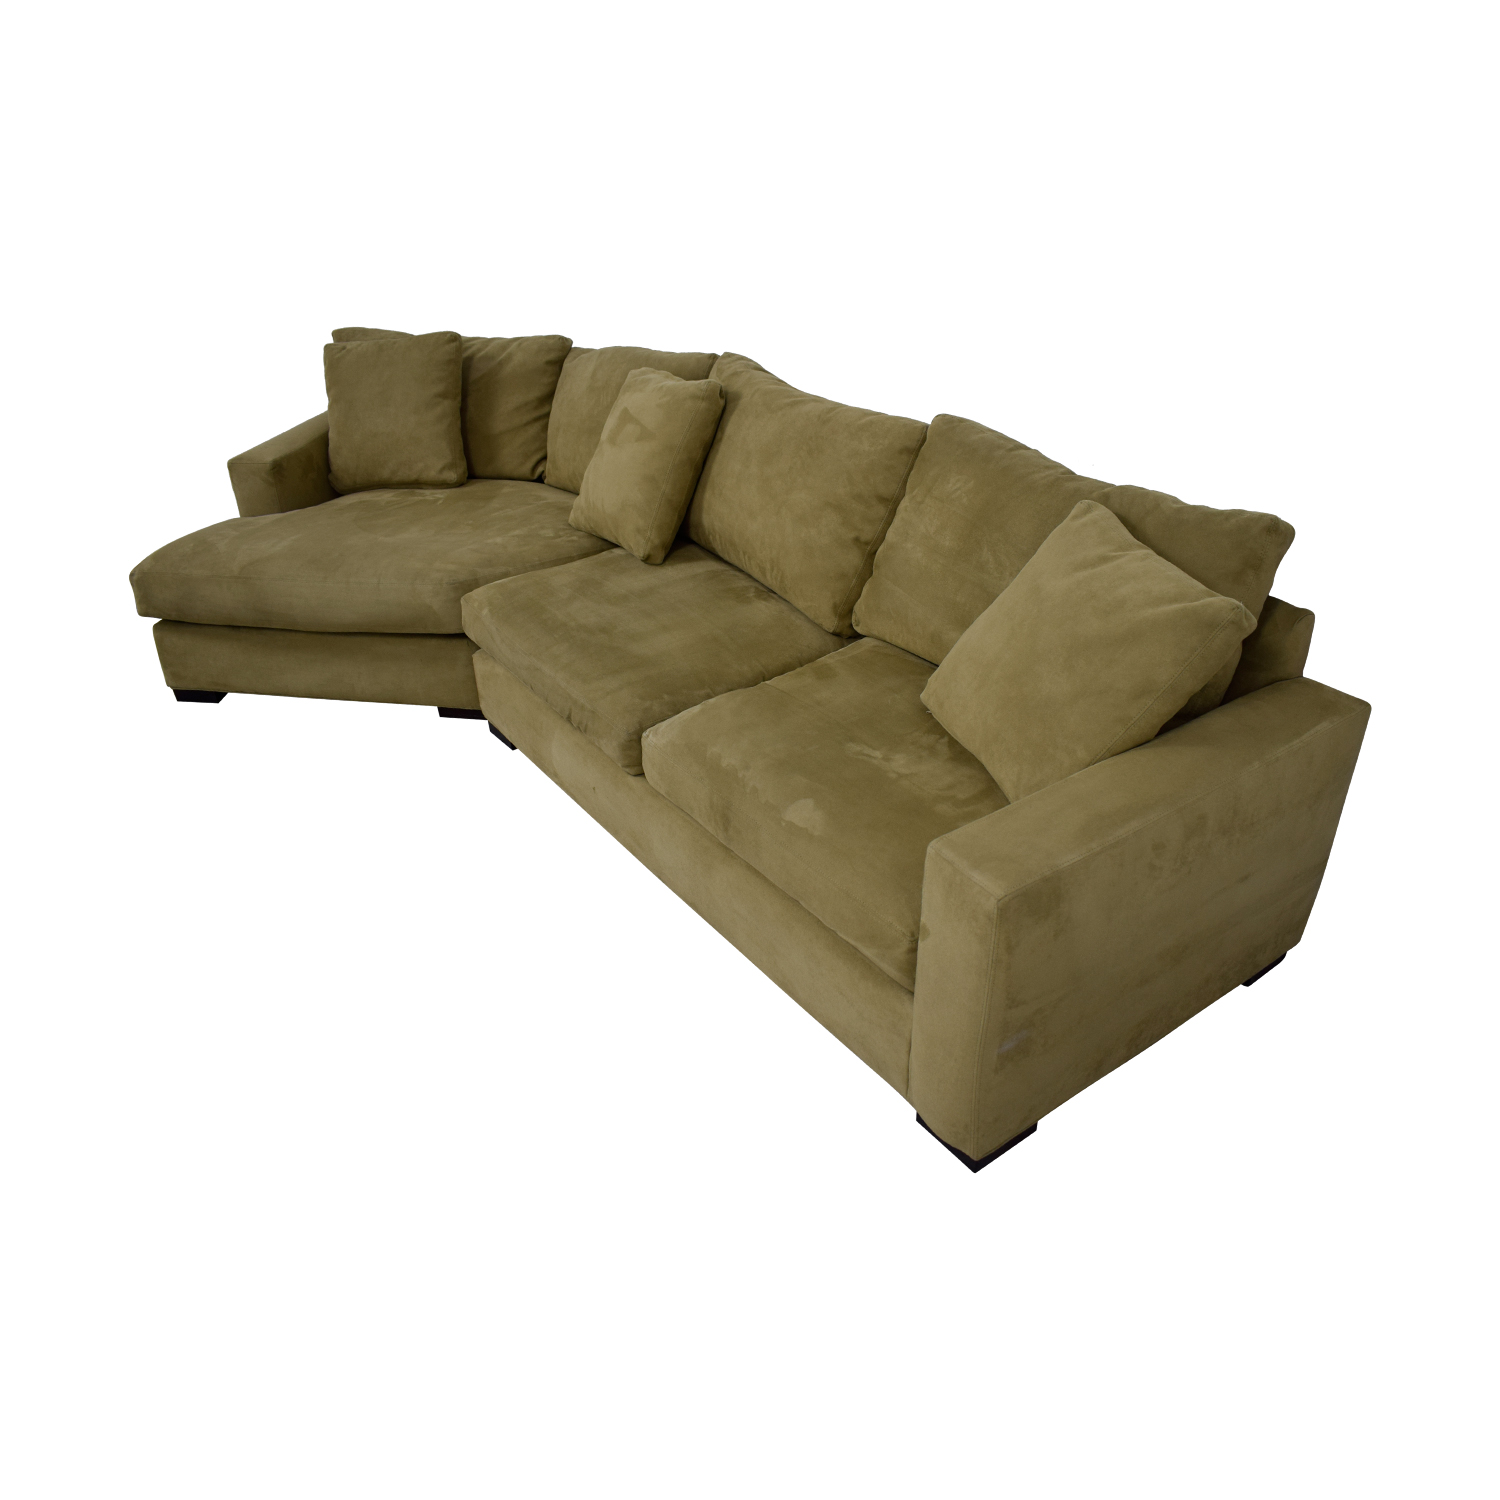 room and board metro sofa with chaise art rs 85 off beige